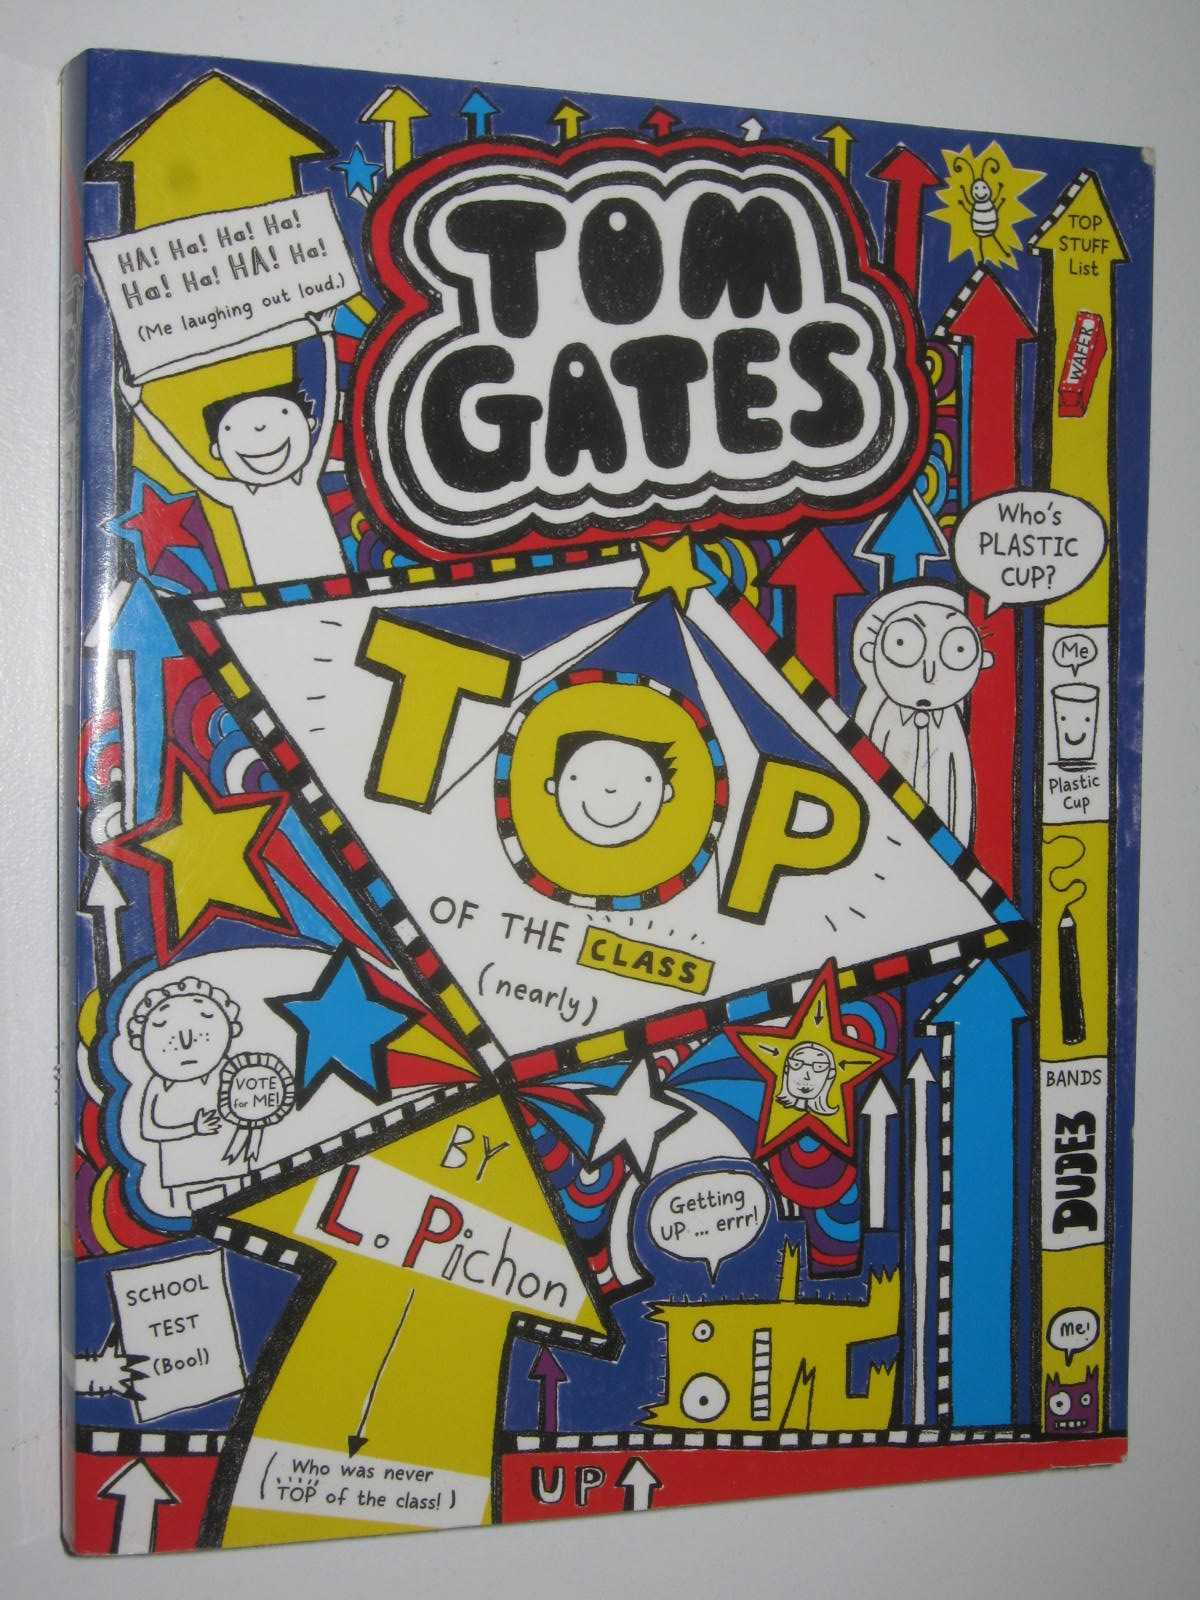 Image for Top of the Class (Nearly) - Tom Gates Series #9